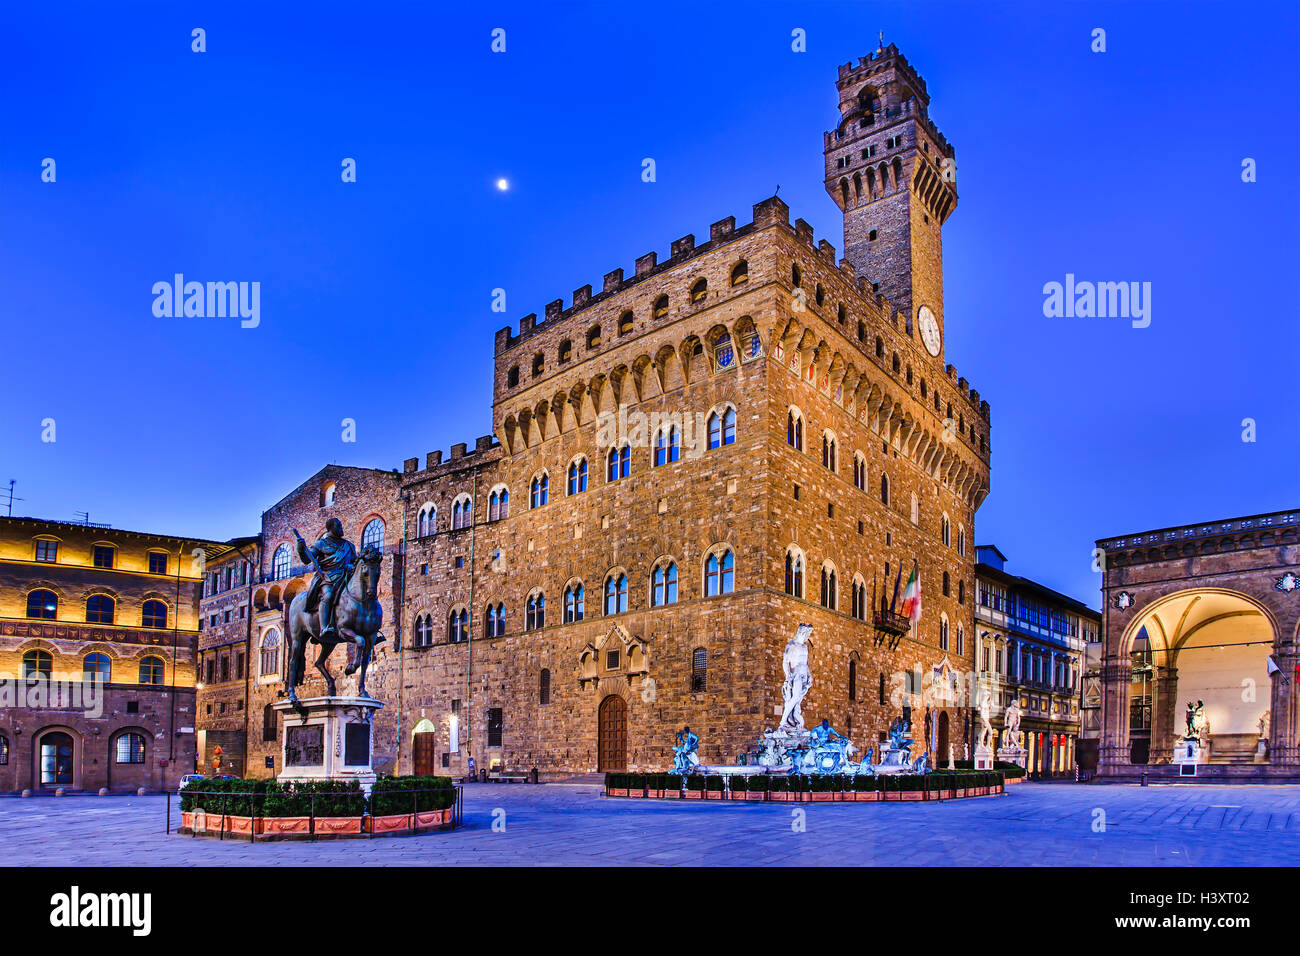 Florence Vecchio palace, square and surrounding landmarks at sunrise when no tourists around - Stock Image